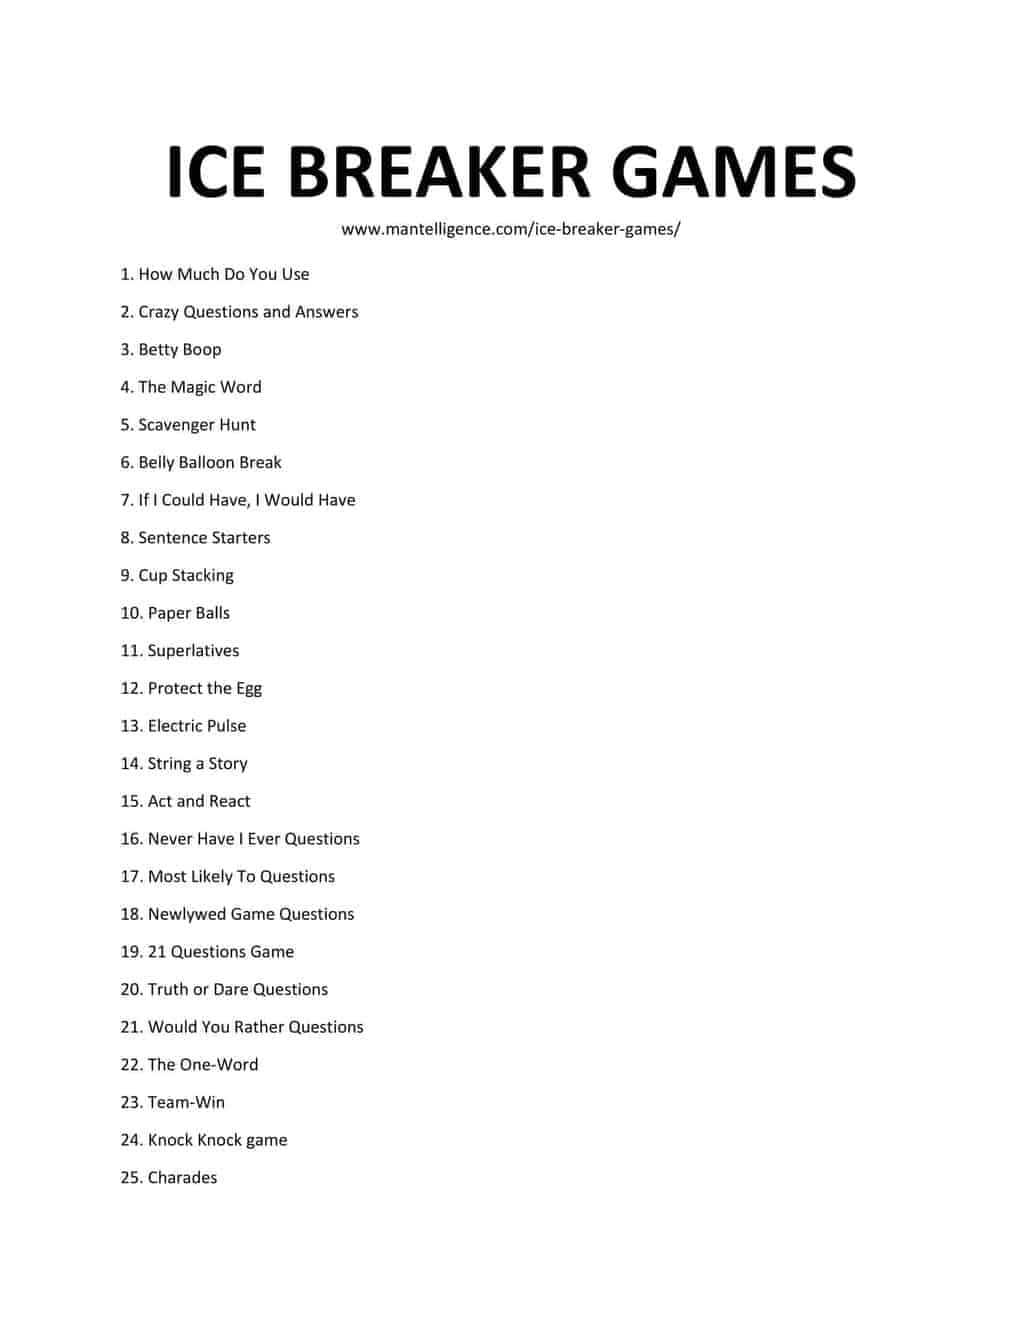 list of Ice Breaker Games